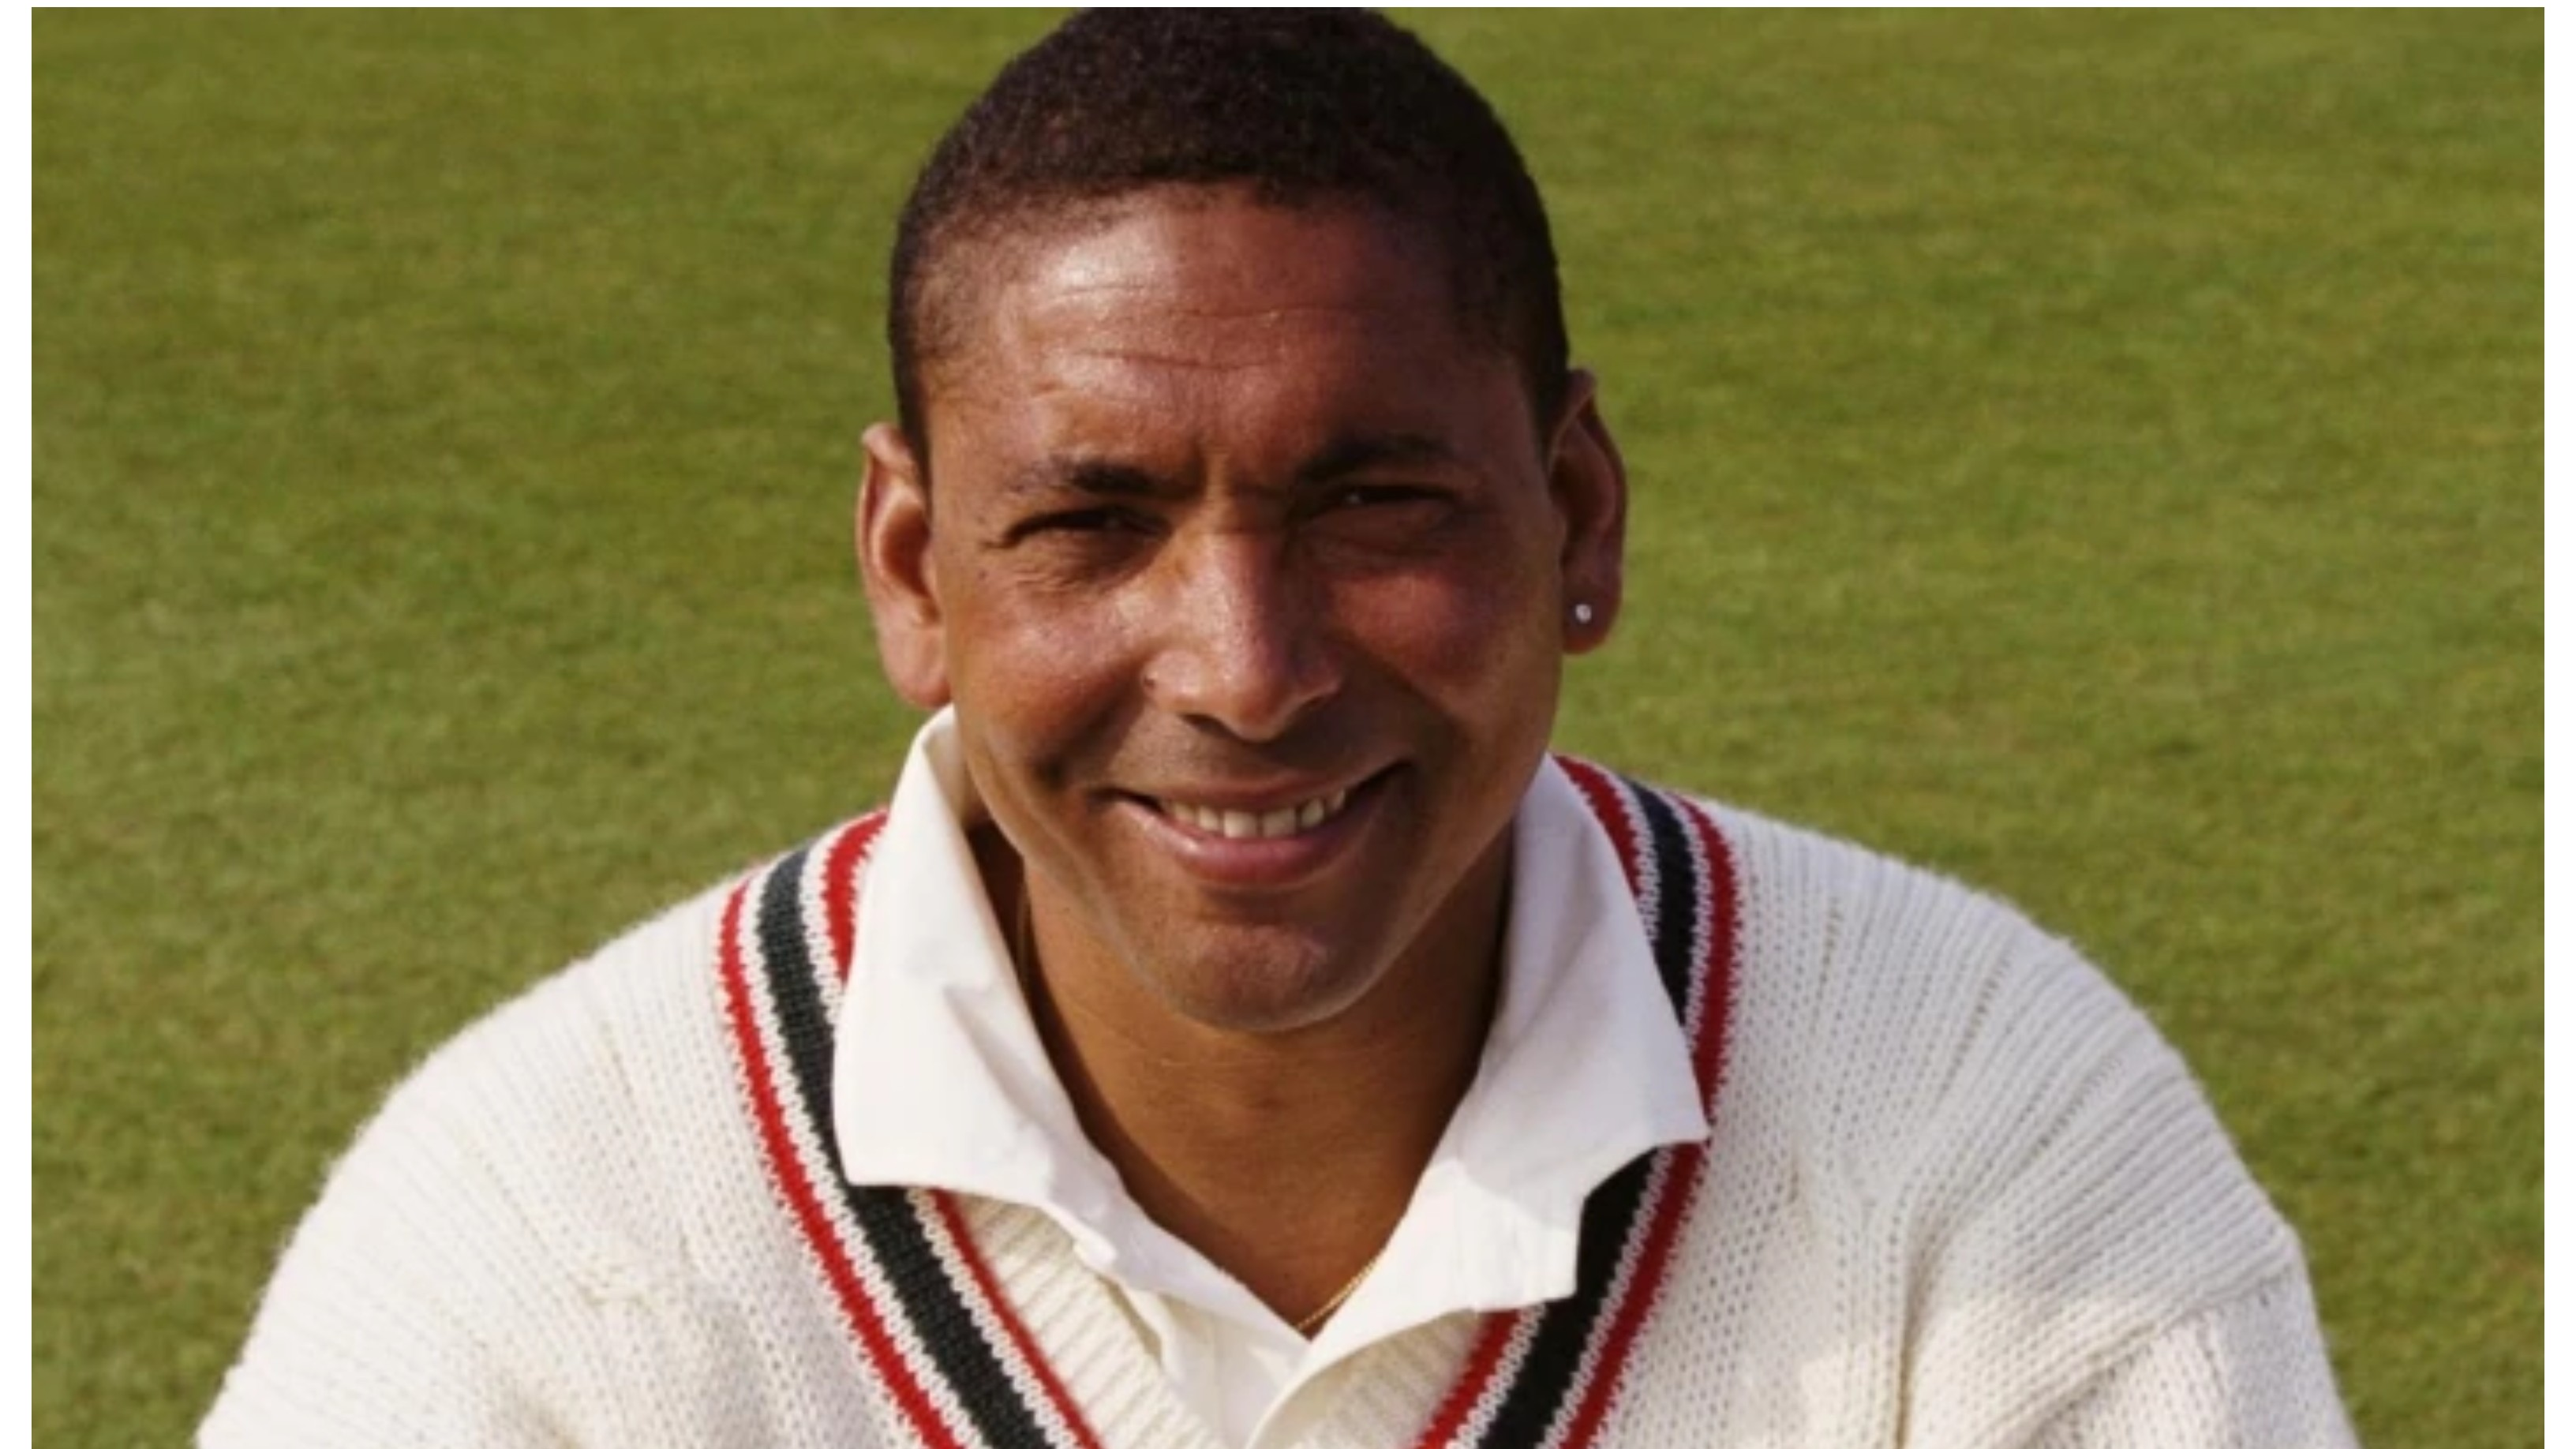 'We will shoot you': Former England cricketer Phillip DeFreitas opens up on racism